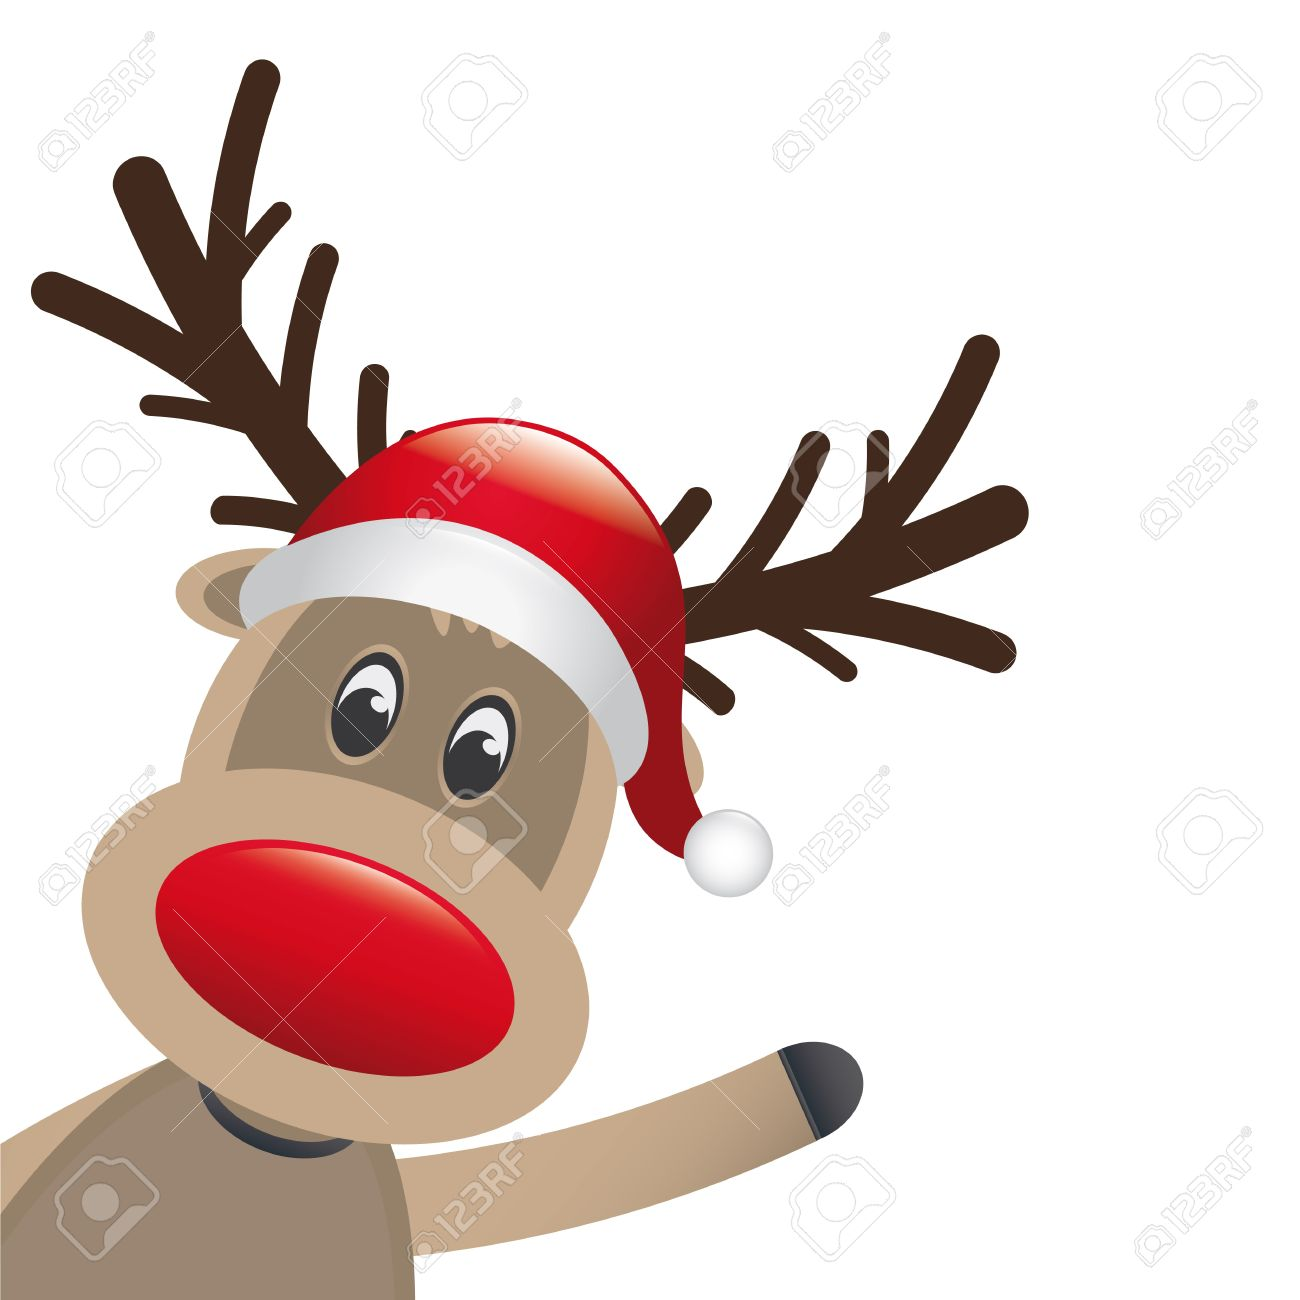 Renne Du Pere Noel Nez Rouge Rudolph Reindeer Red Nose Wave Santa Claus Stock Photo, Picture